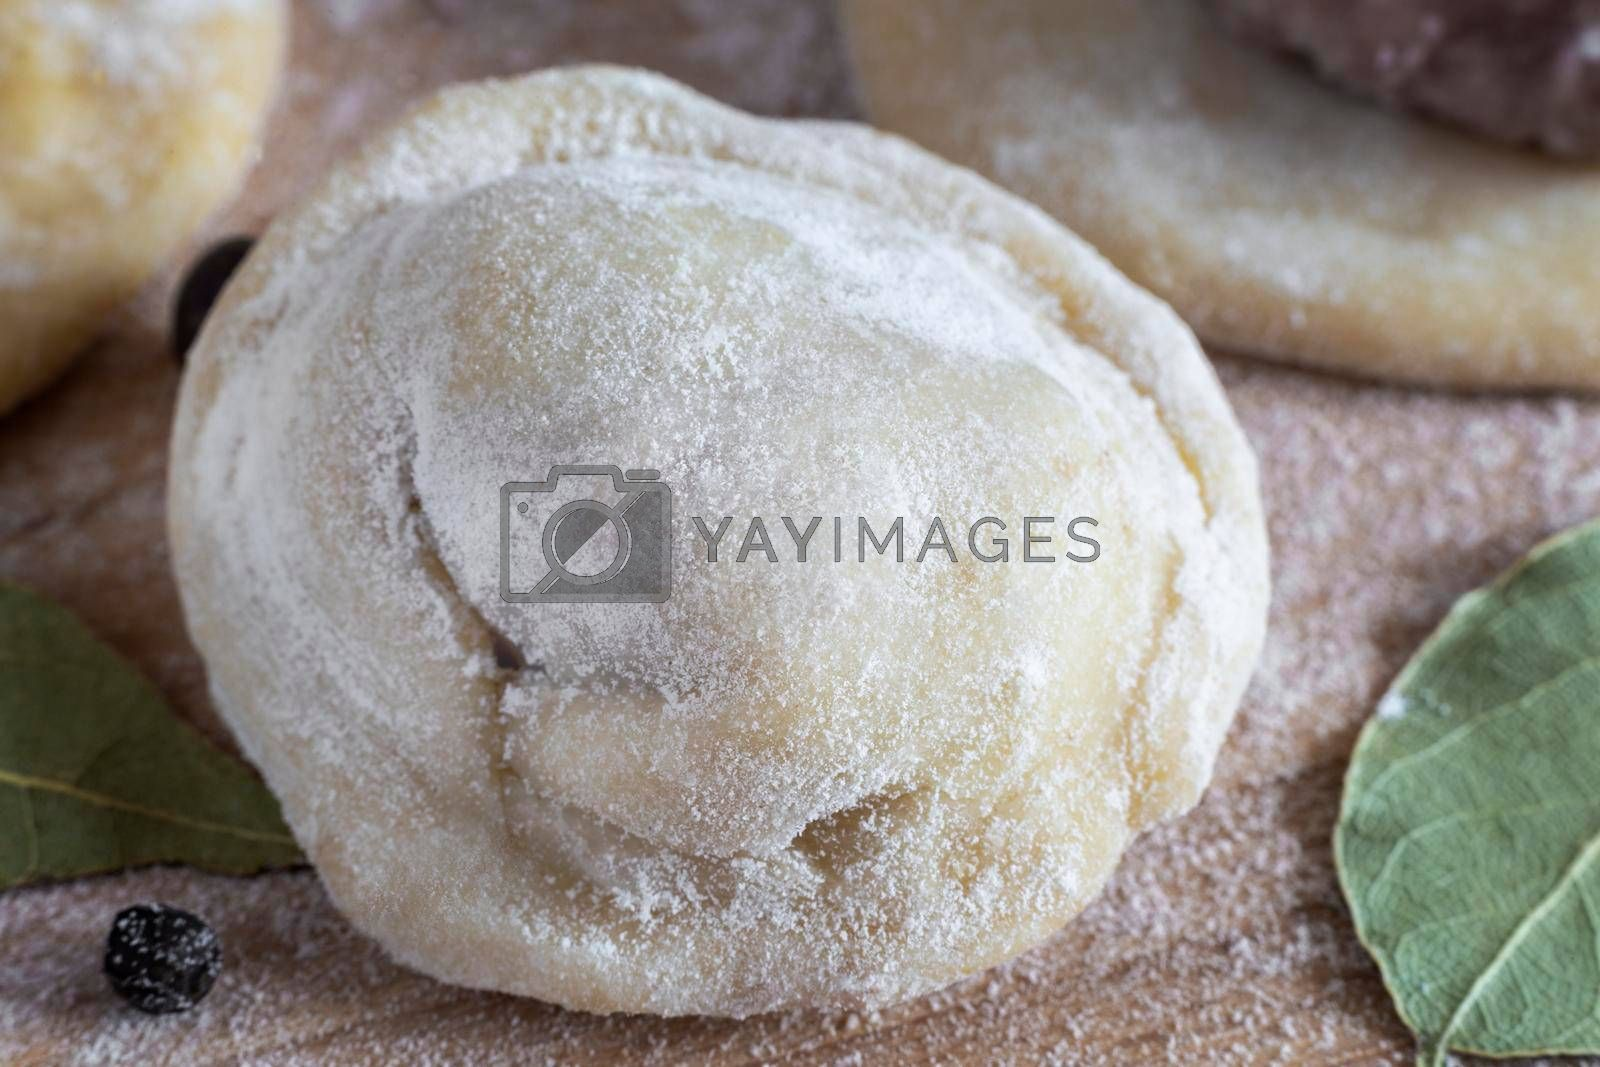 Cooking homemade dumplings, Russian dumplings with meat on a wooden table and ingredients for cooking. Rustic style. Front view, close-up